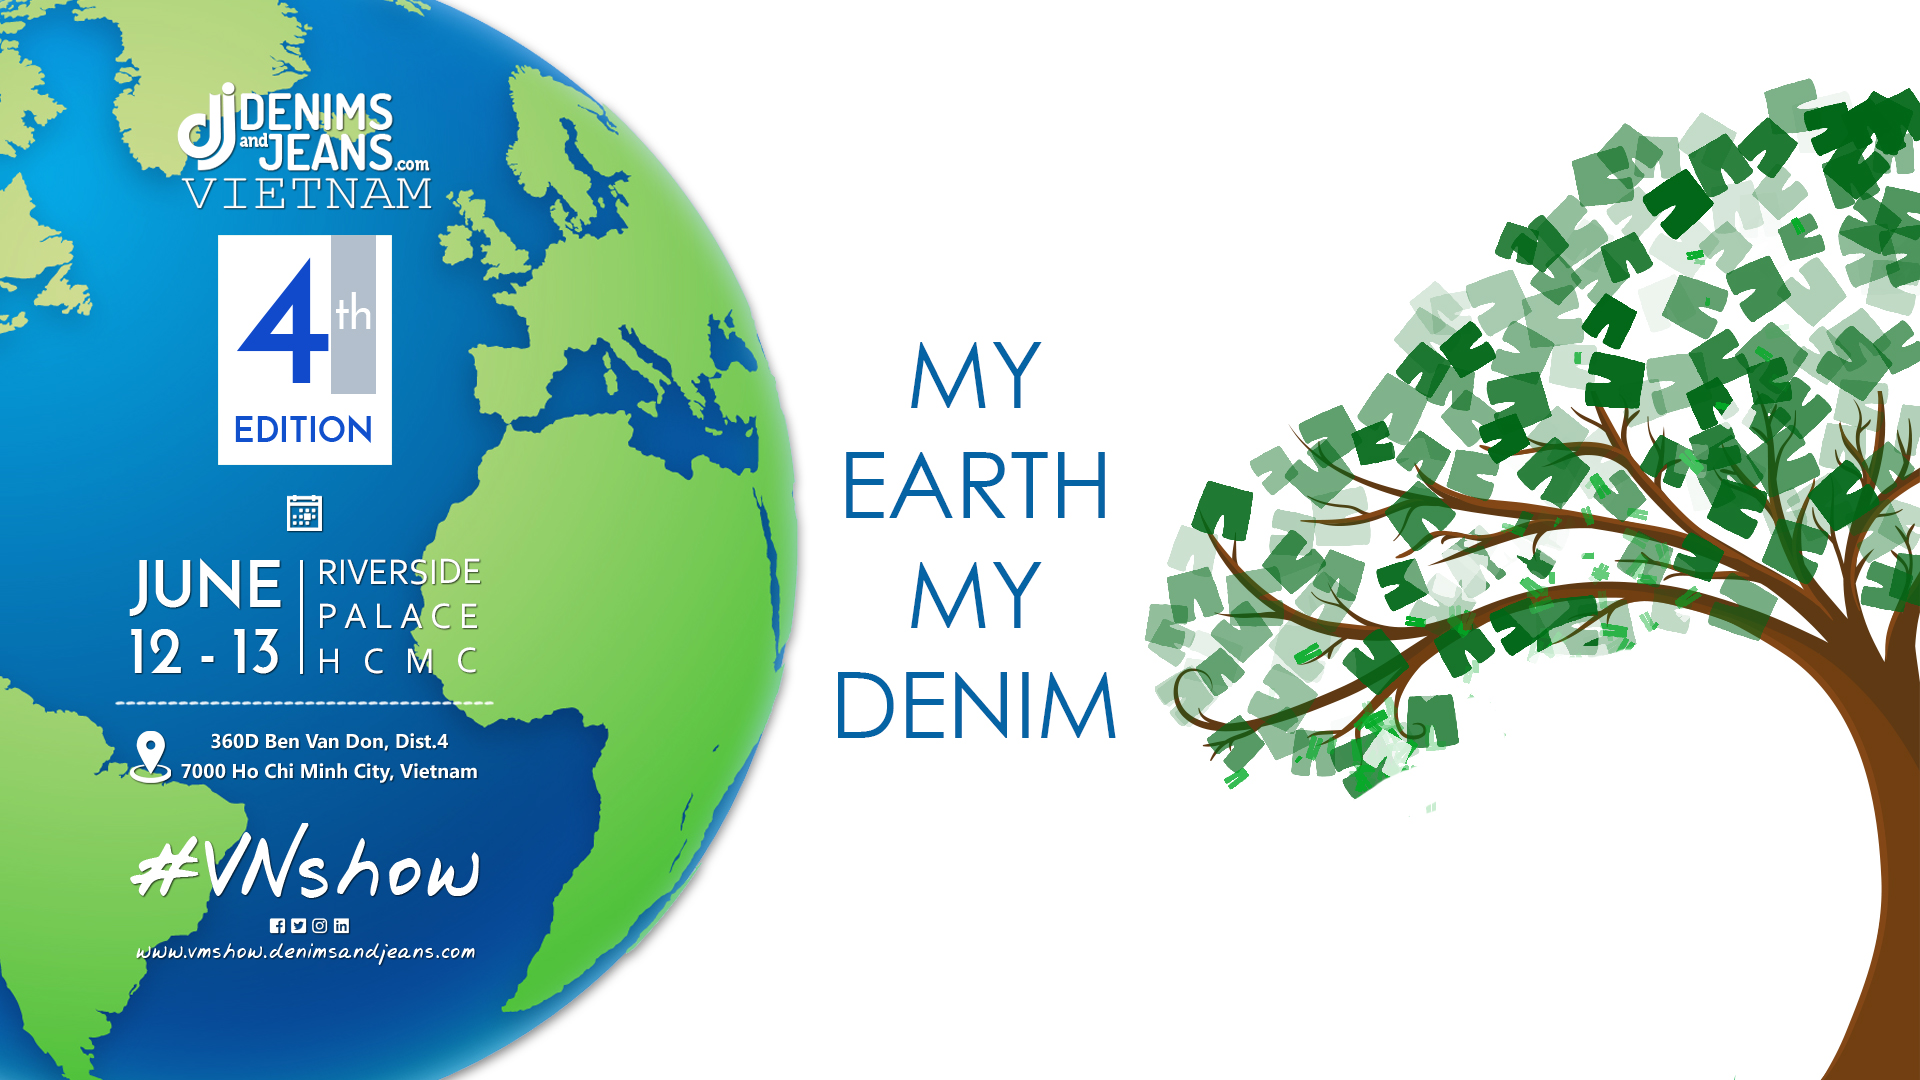 My Earth My Denim